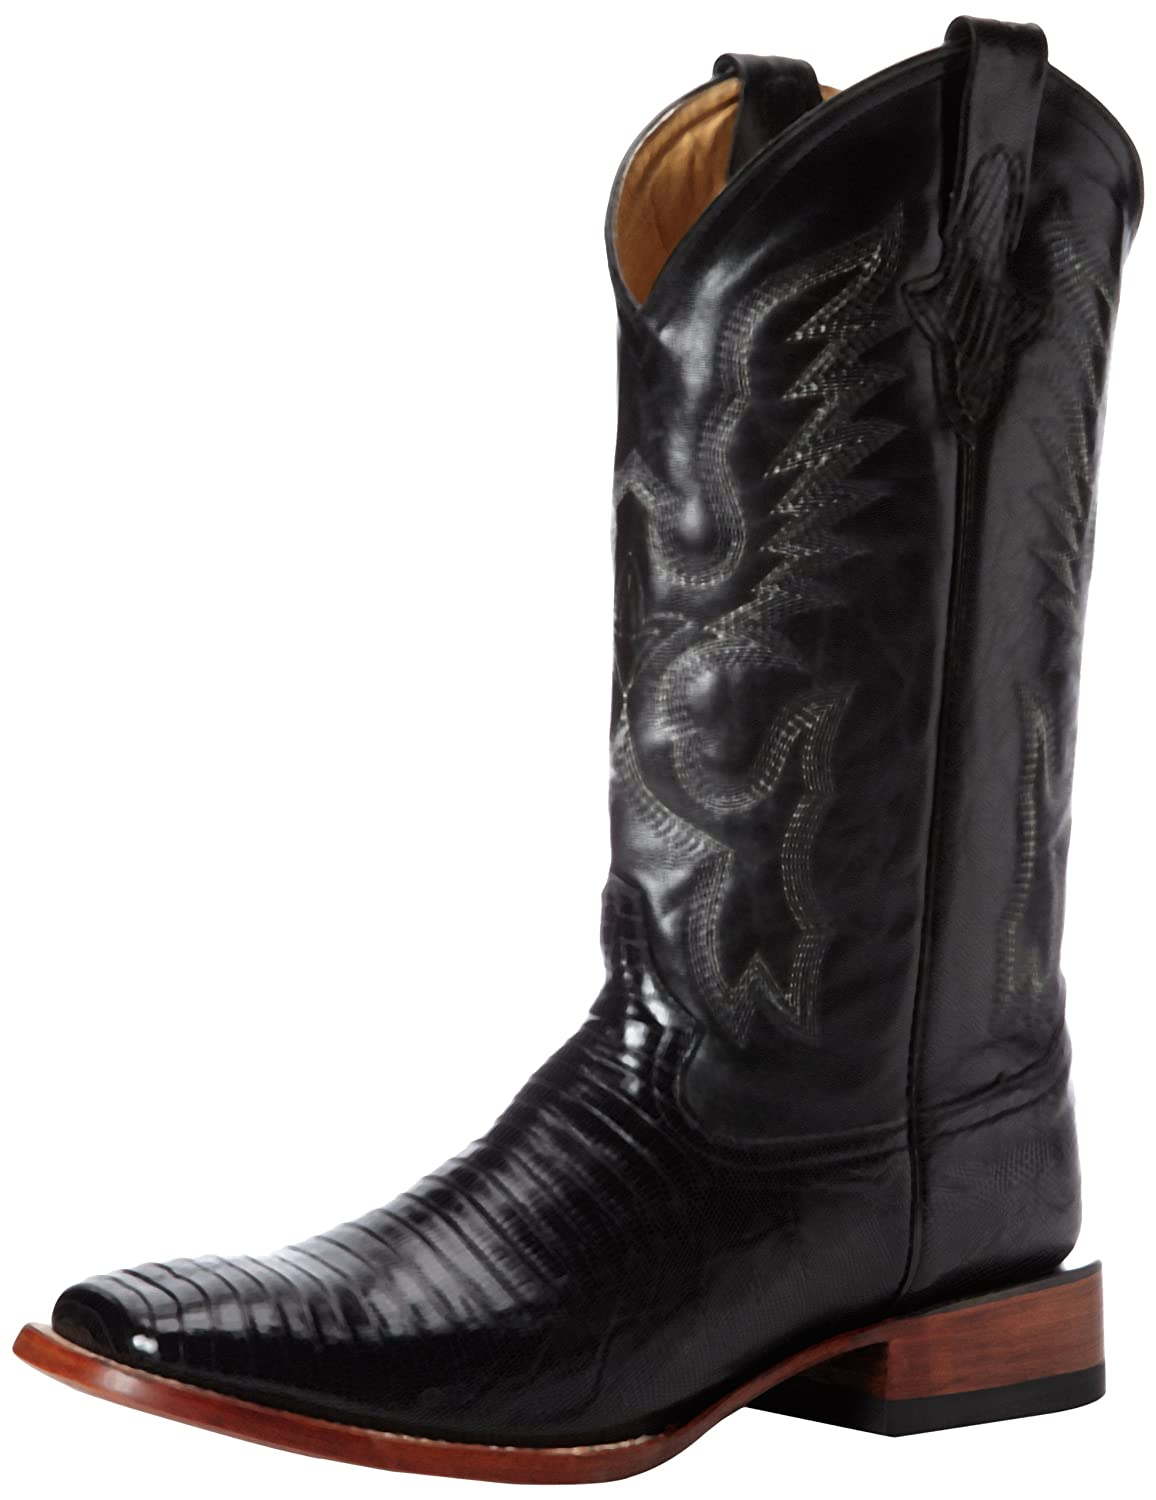 Ferrini Men's Teju Lizard S-Toe Western Boot B00B9GN98E 10 D(M) US|Black